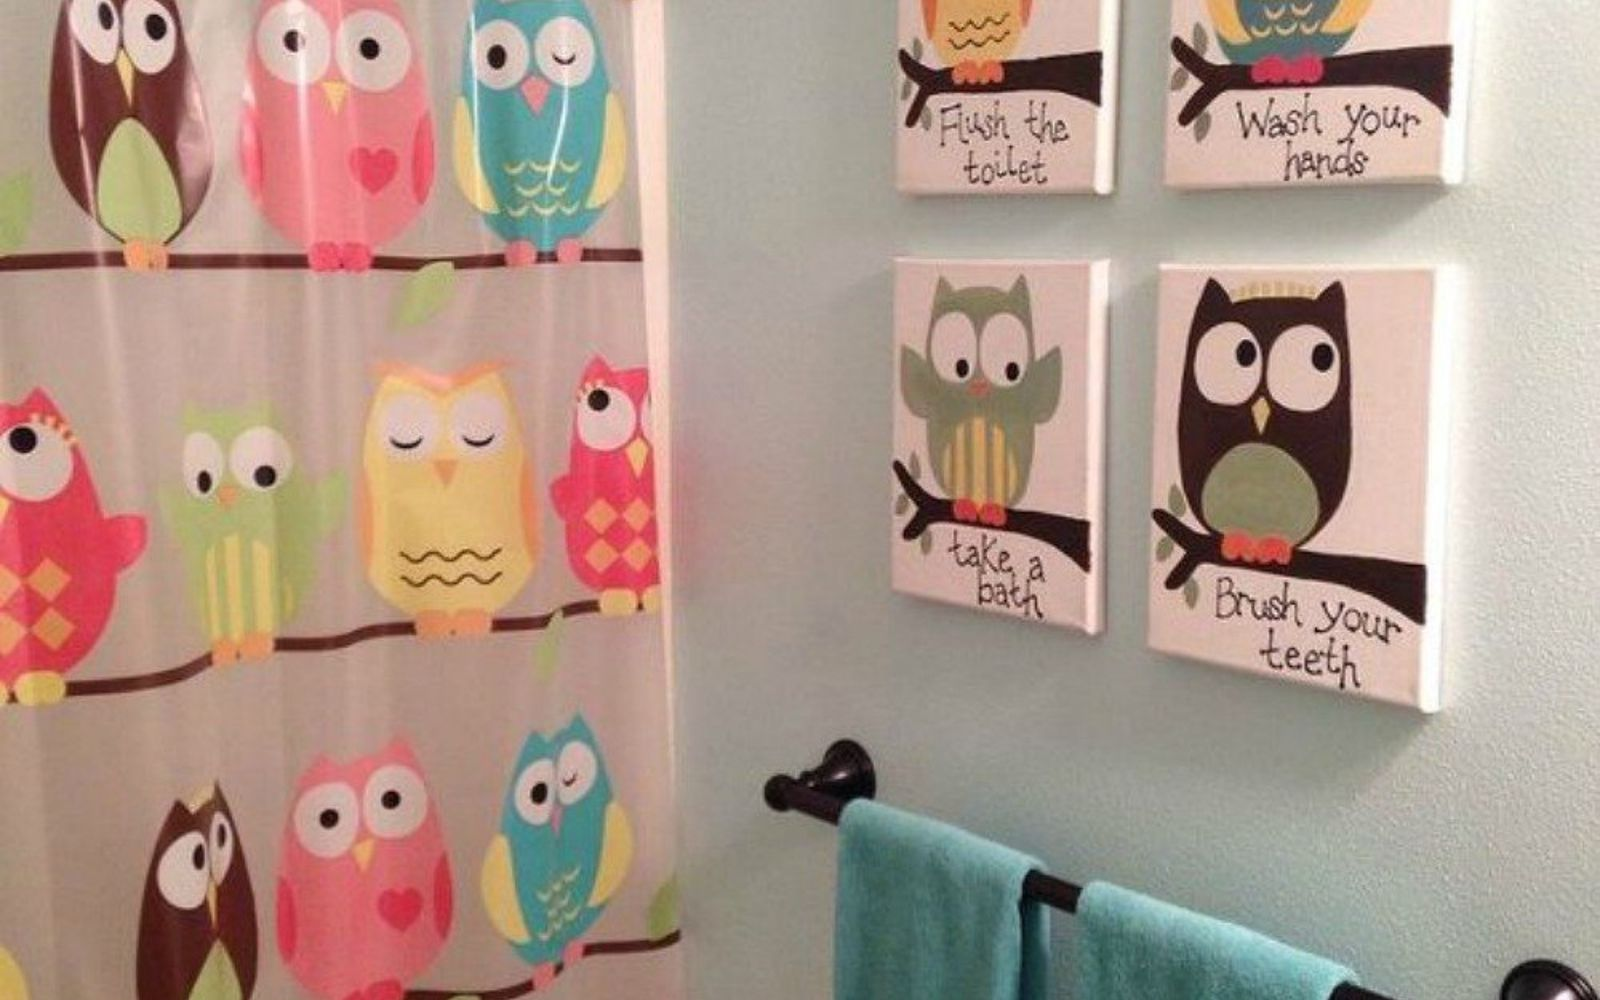 s give your kids the coolest bathroom with these 13 jaw dropping ideas, bathroom ideas, Have a hoot with owl themed decor